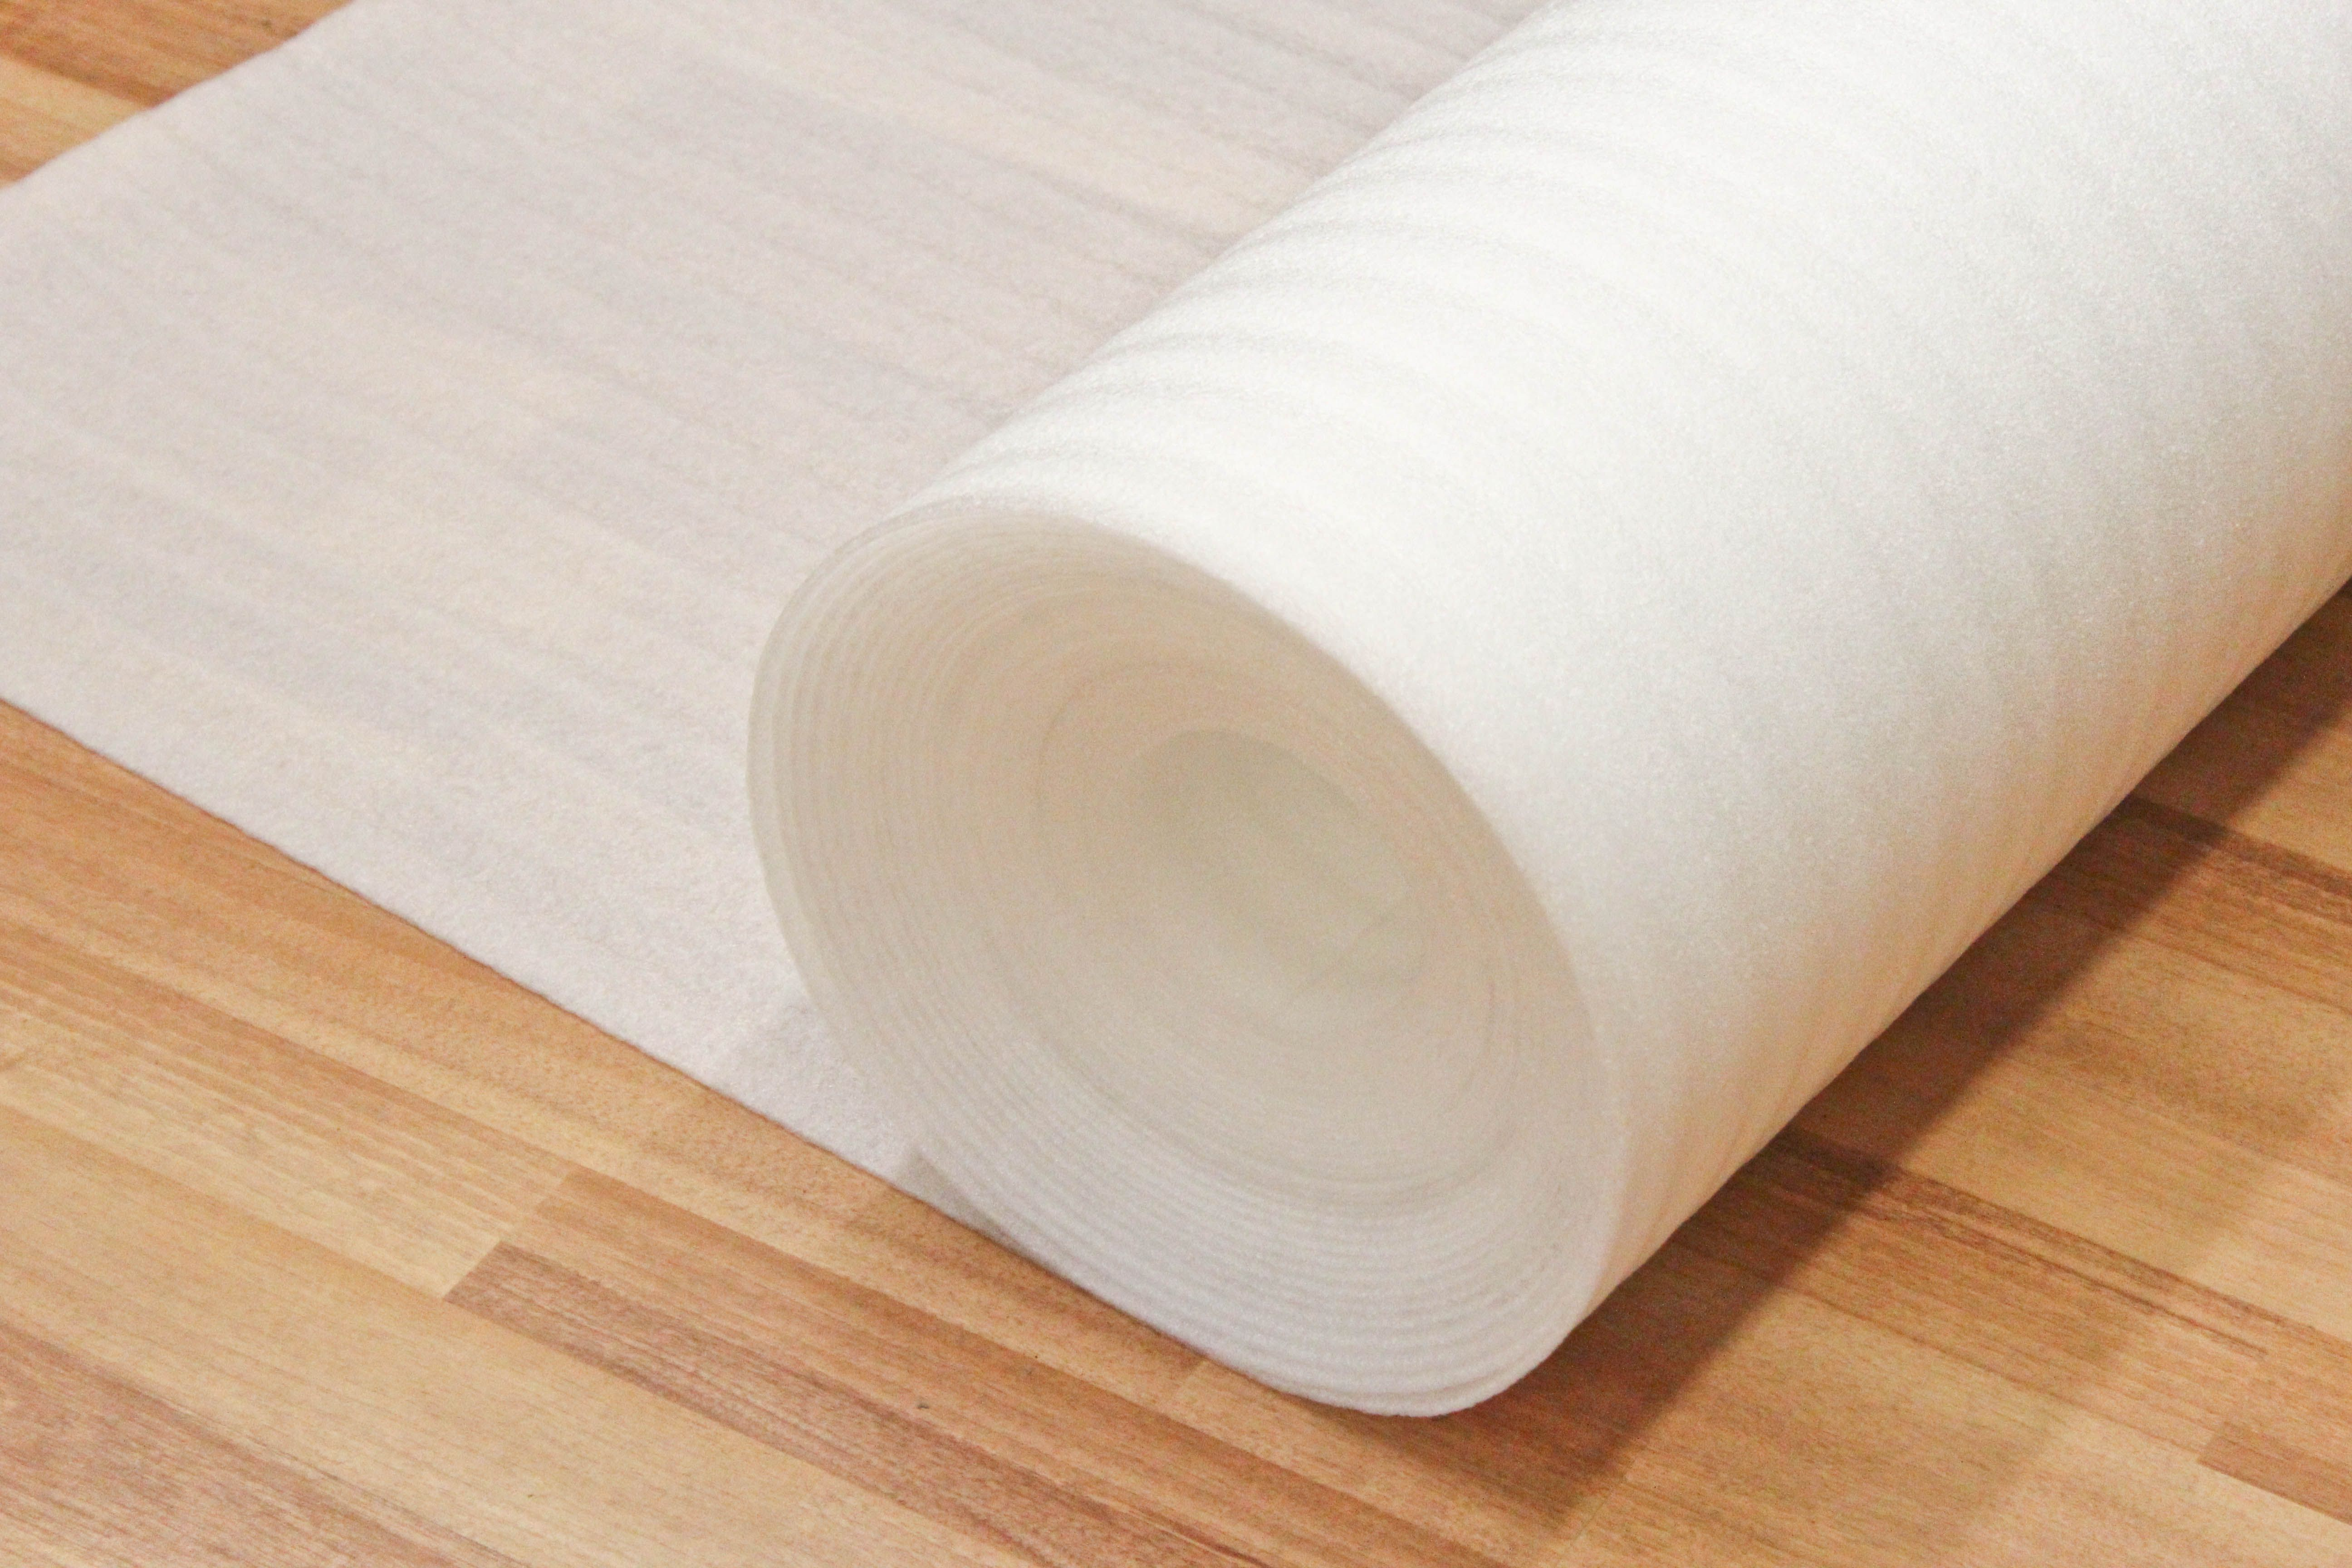 3 things you need to consider when choosing laminate